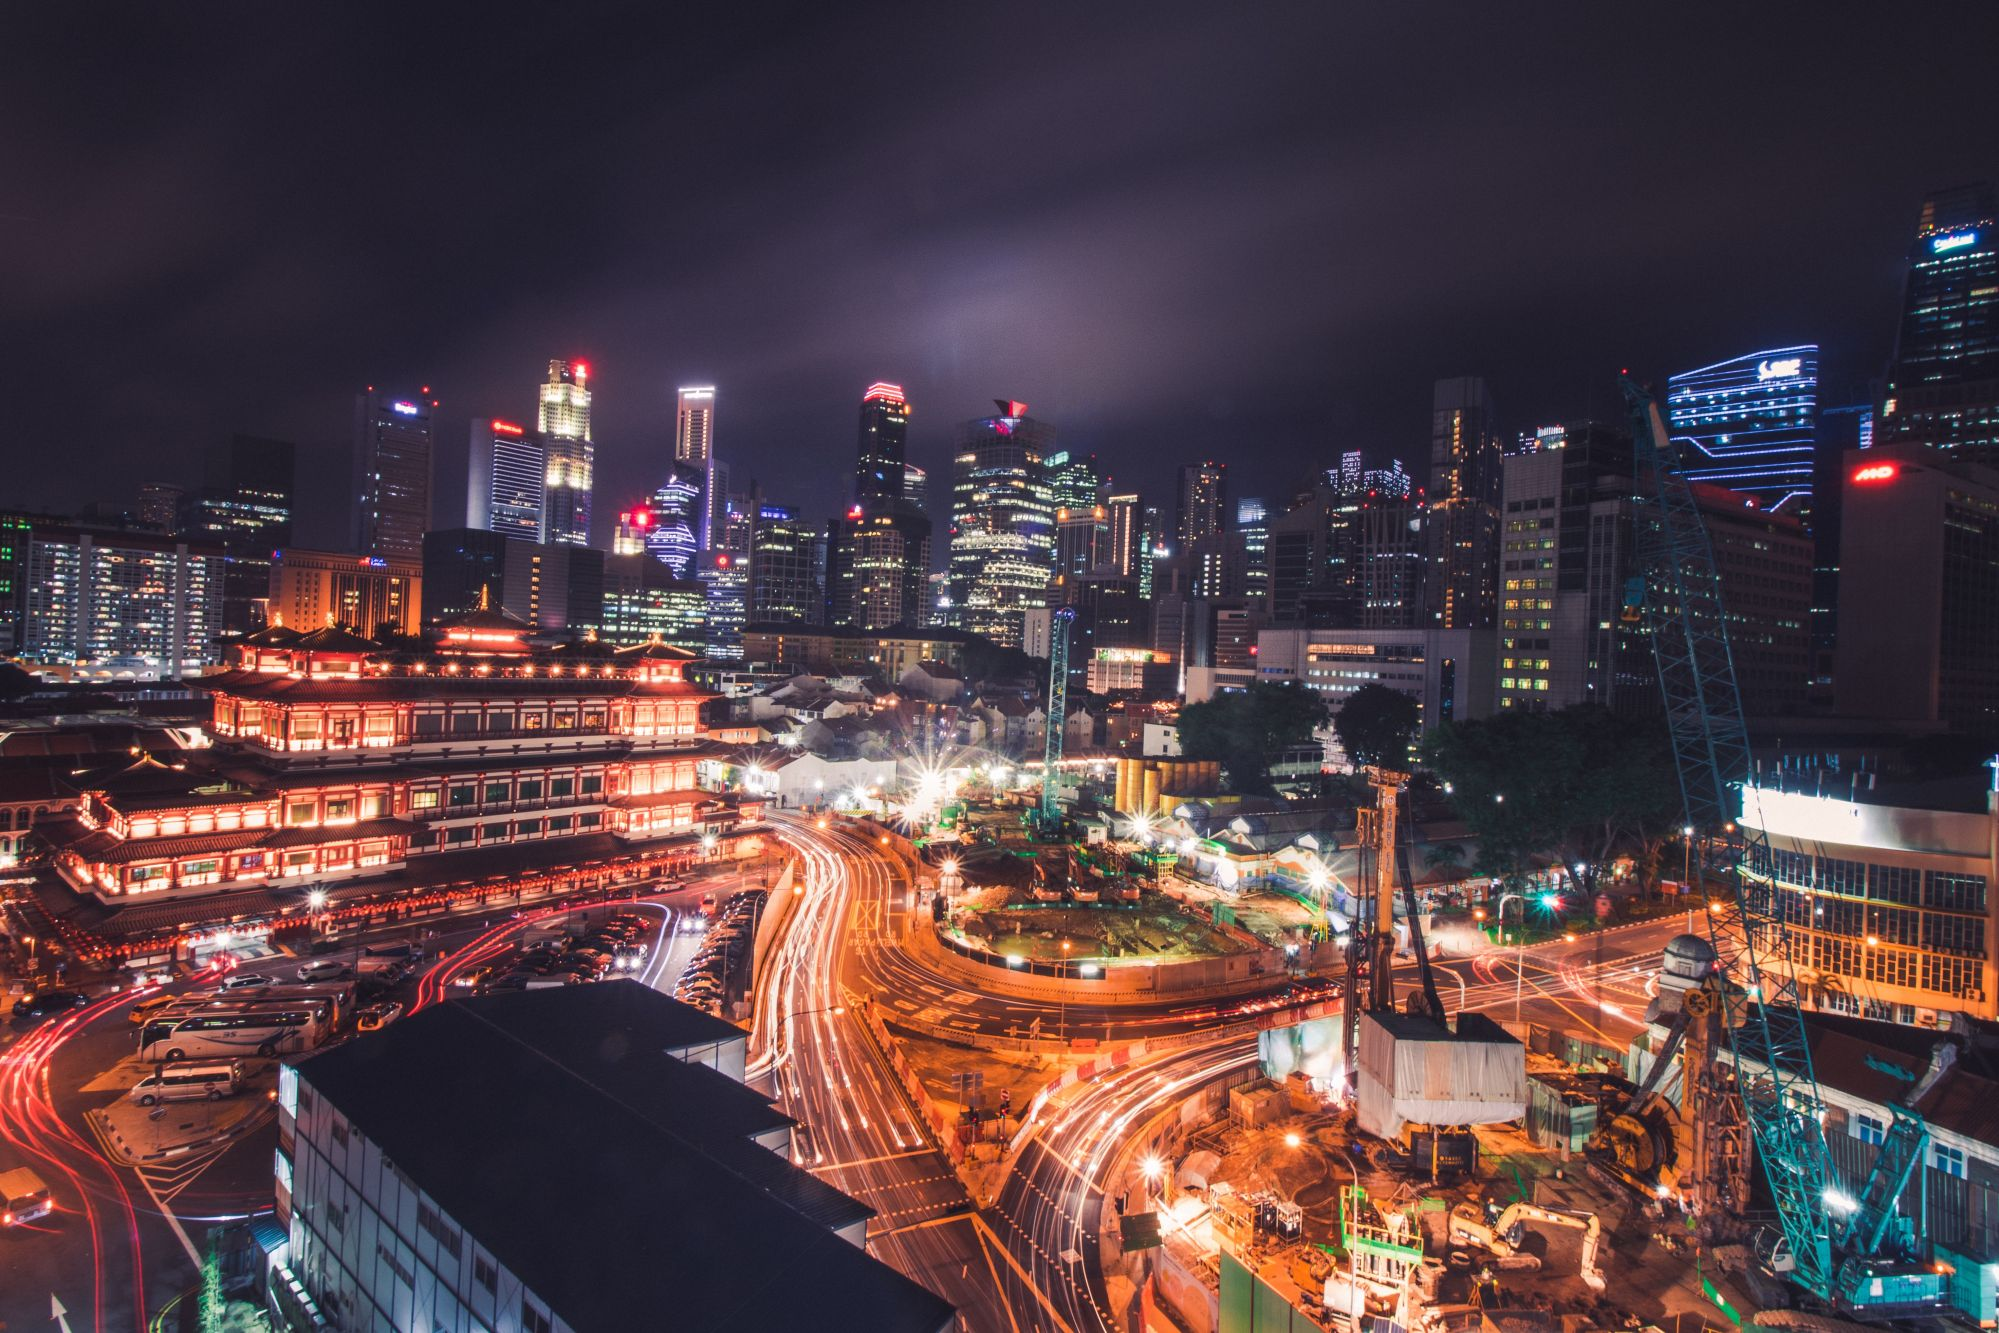 Singapore Tops List of Smart Cities Around the World, According to New Survey